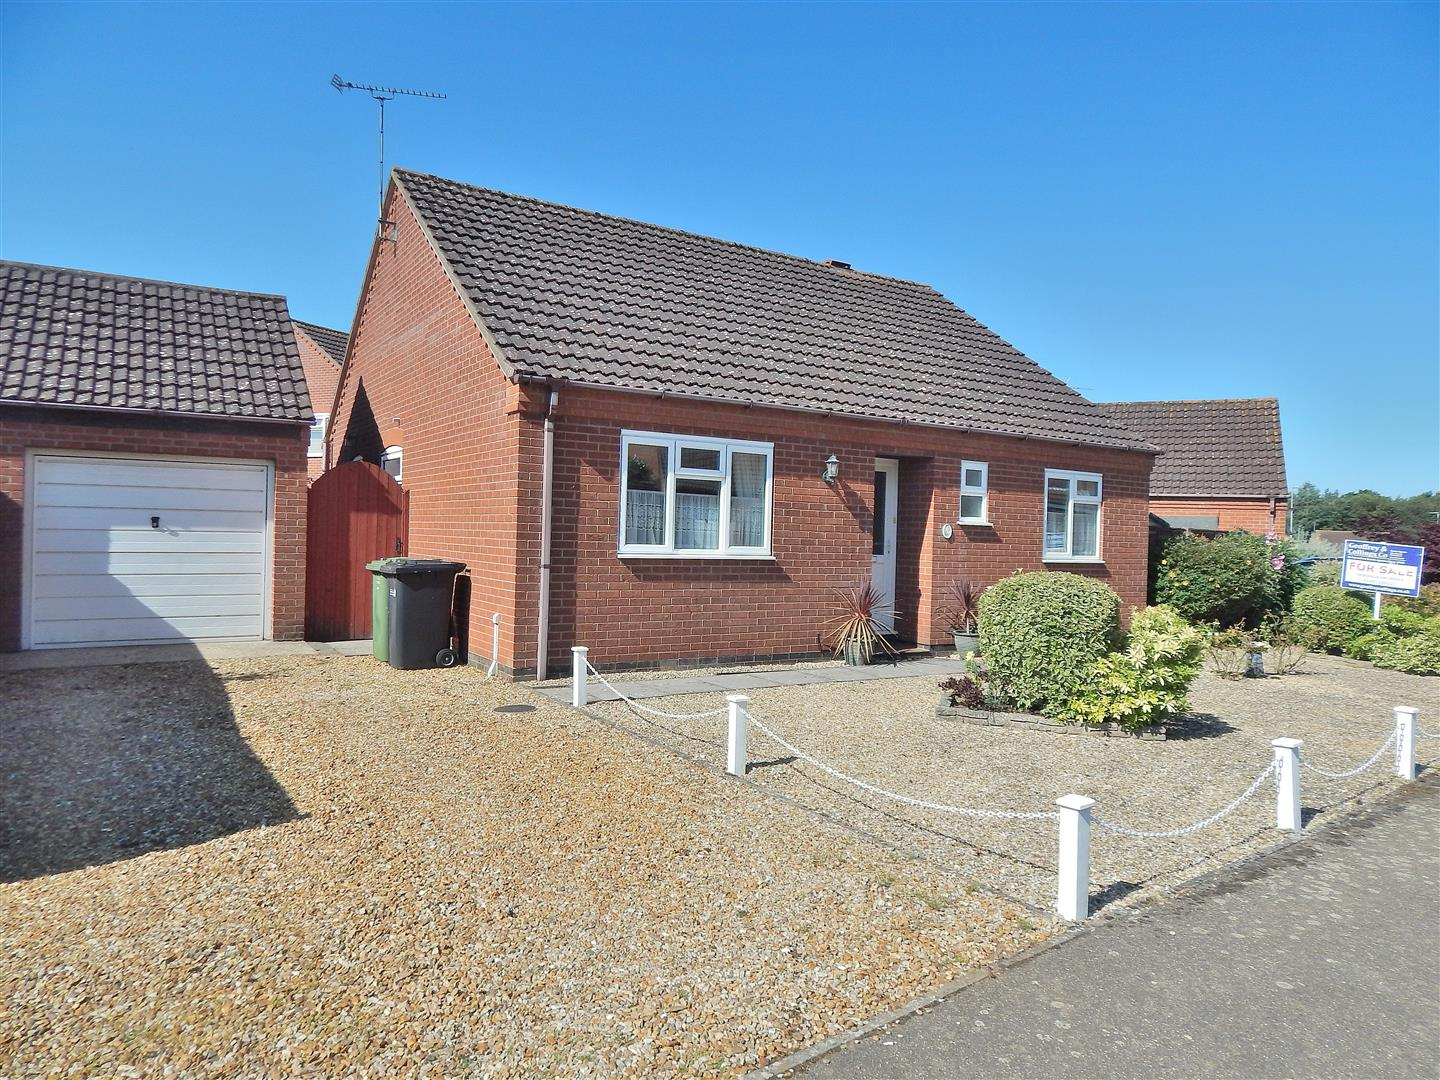 3 bed detached bungalow for sale in King's Lynn, PE31 6UY 0